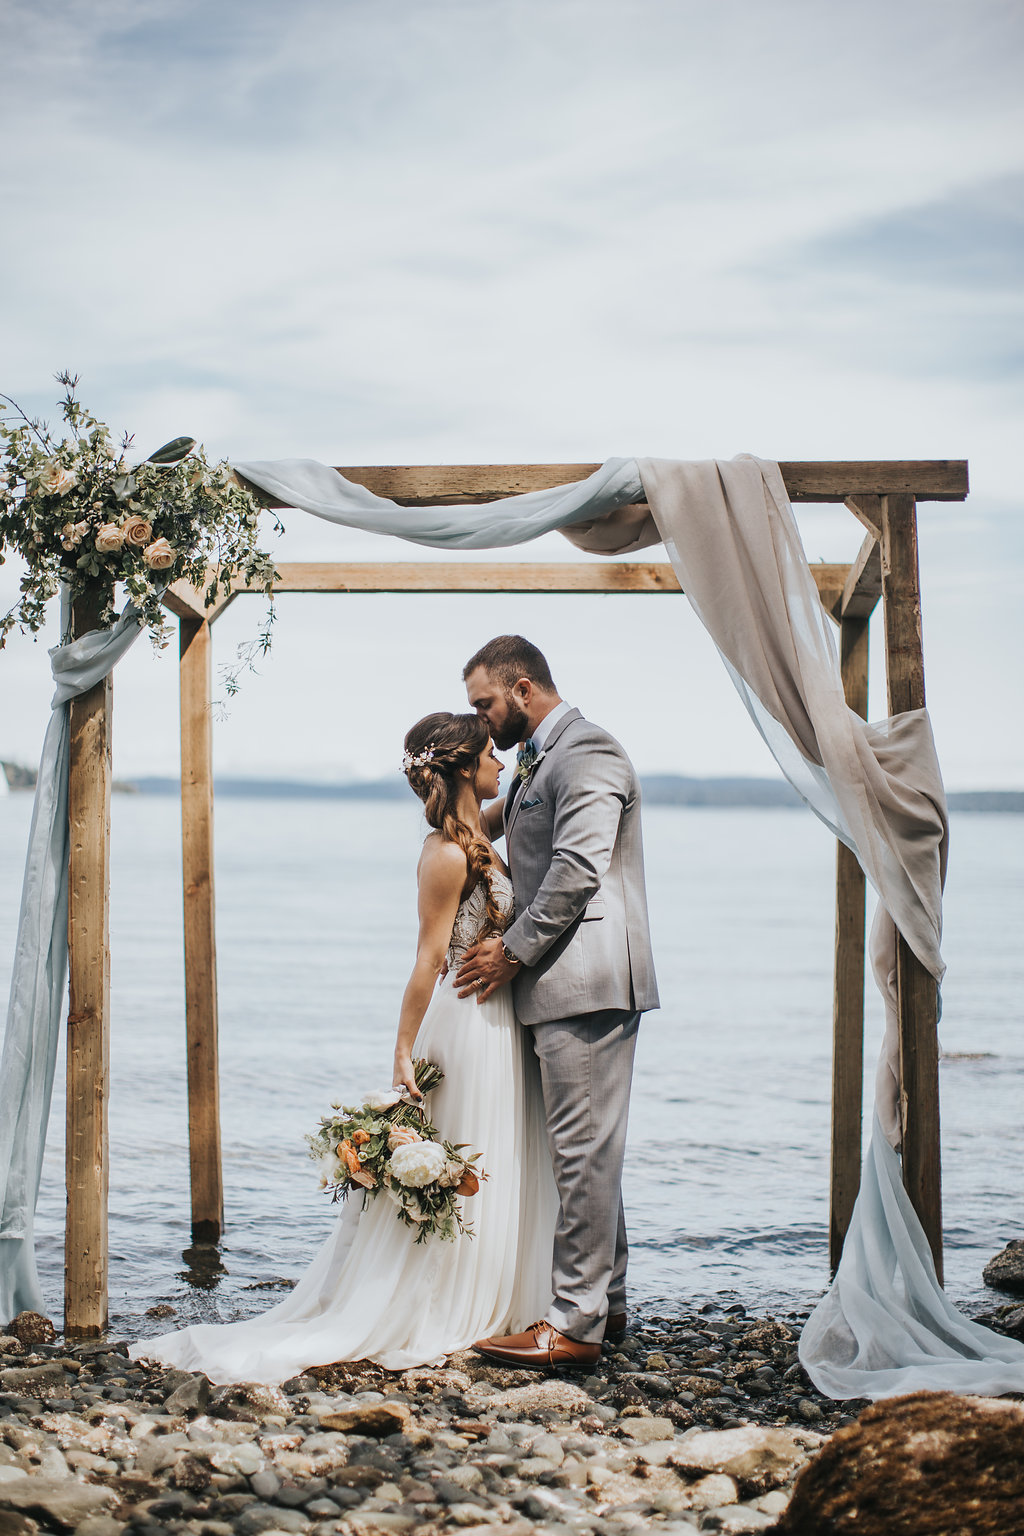 Vancouver-Island-British-Columbia-Beach-Wedding-Ocean-Ceremony-Neutral-Arbour-Romantic-Peach-Bouquet.jpg